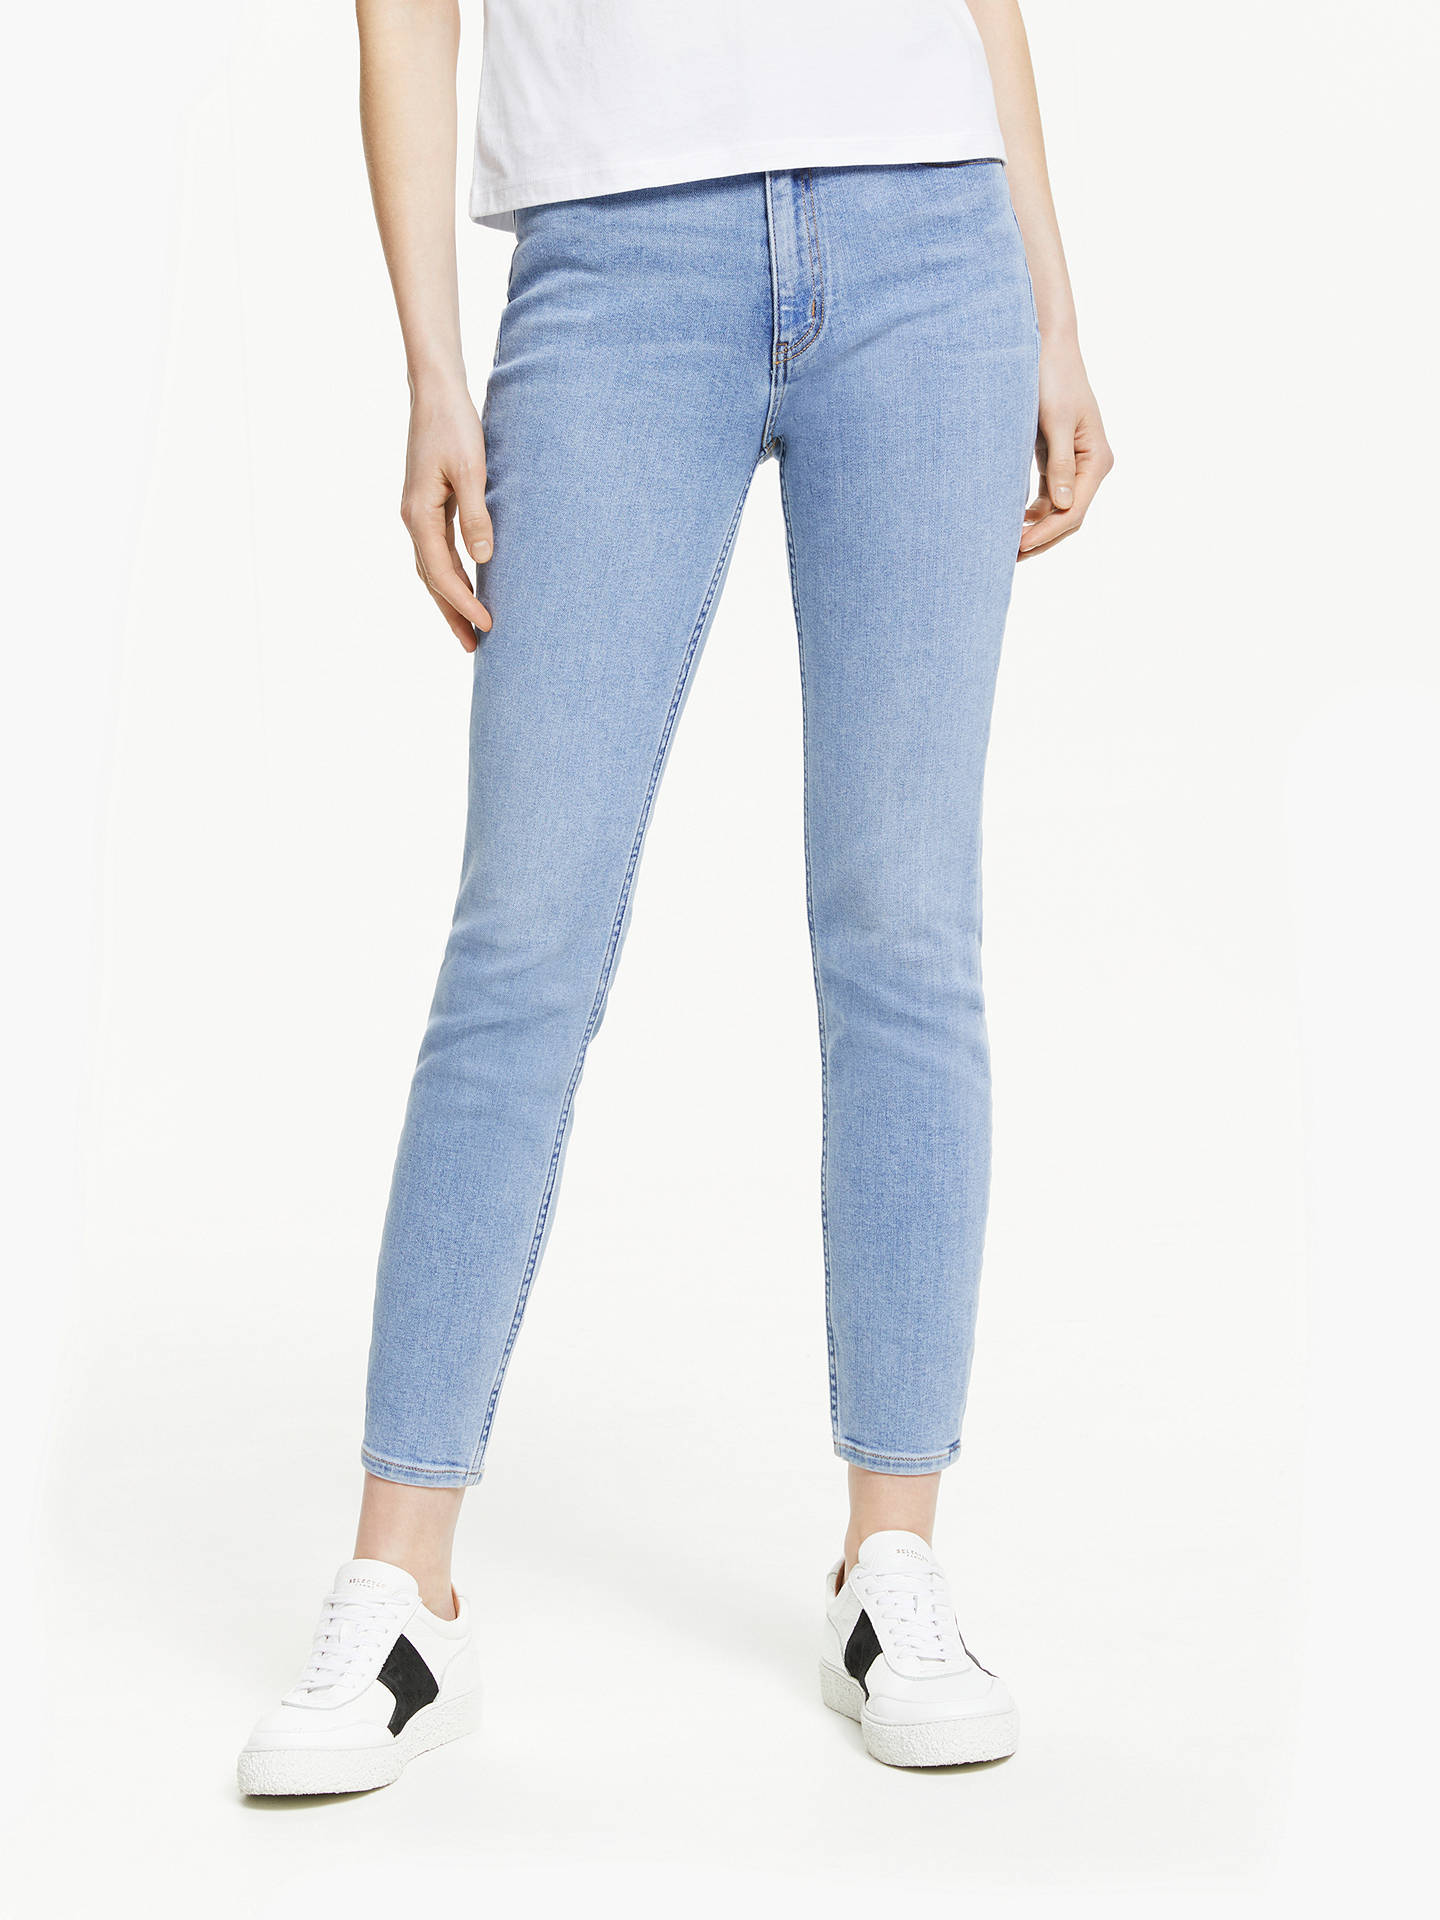 9c89e8f27c9e6 Buy Calvin Klein High Rise Skinny Ankle Jeans, Iconic Stone, W27/L30 Online  ...